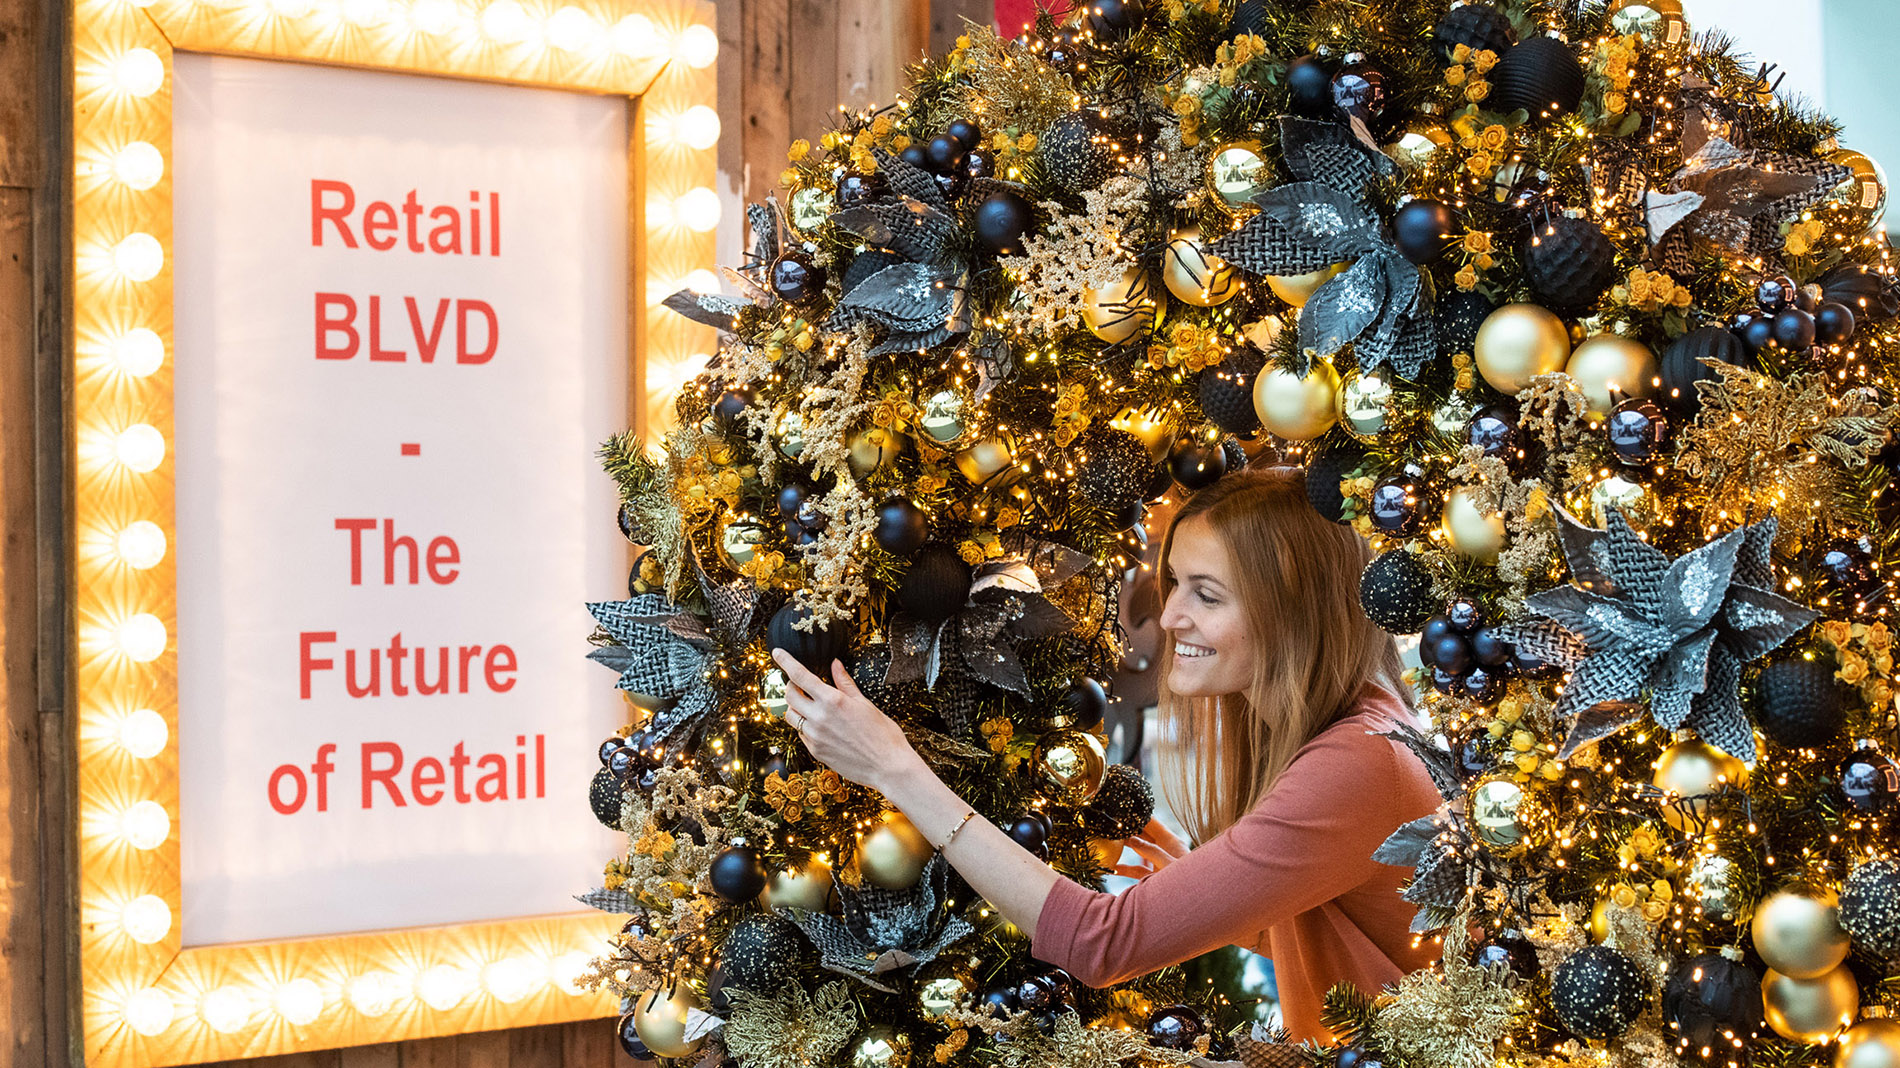 Retail Boulevard at Christmasworld